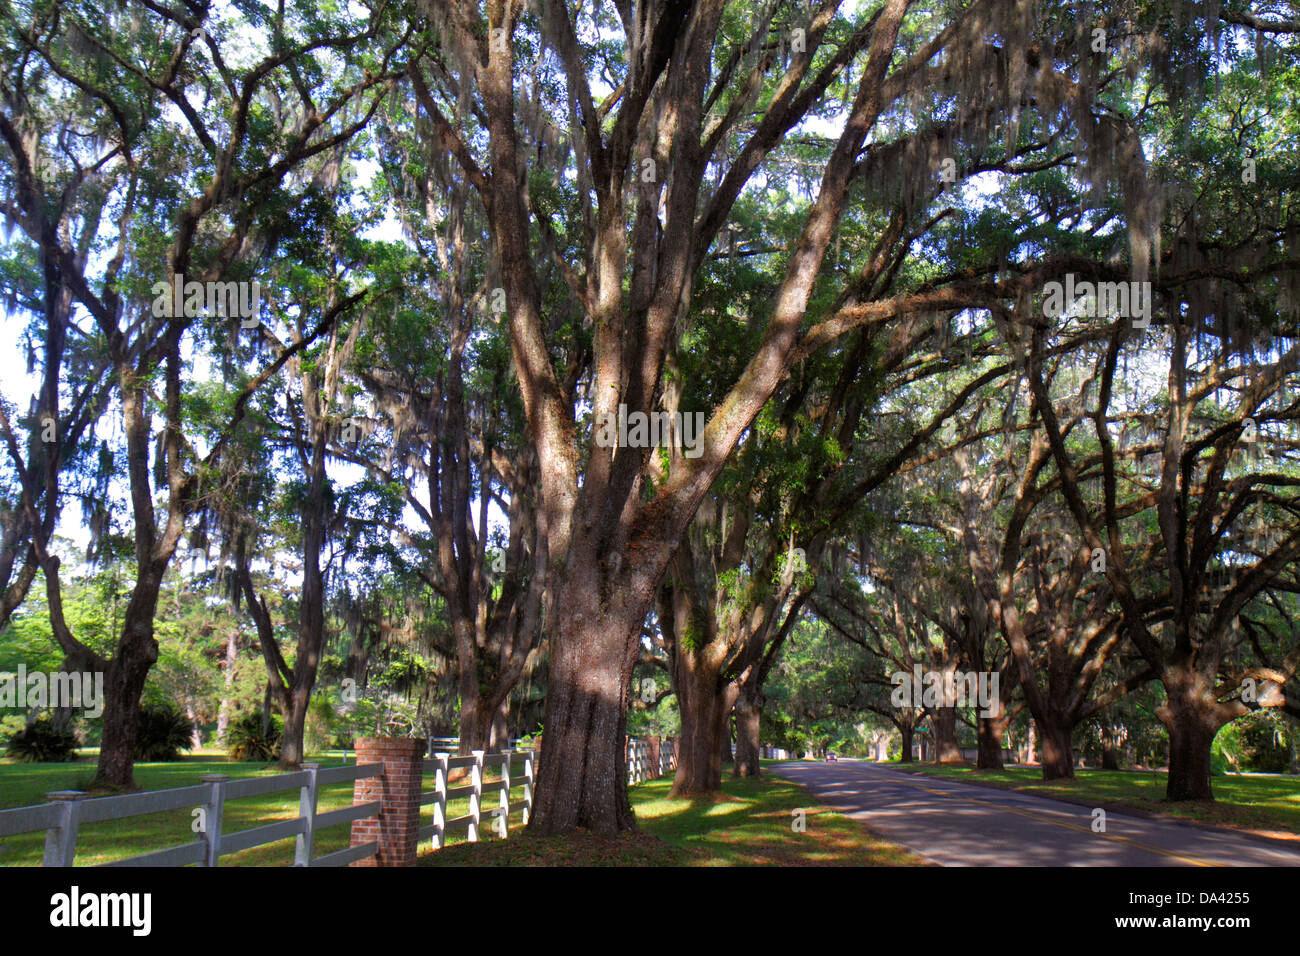 Florida, FL, South, Tallahassee, Canopy Road, live oak trees, Spanish moss, sightseeing visitors travel traveling Stock Photo